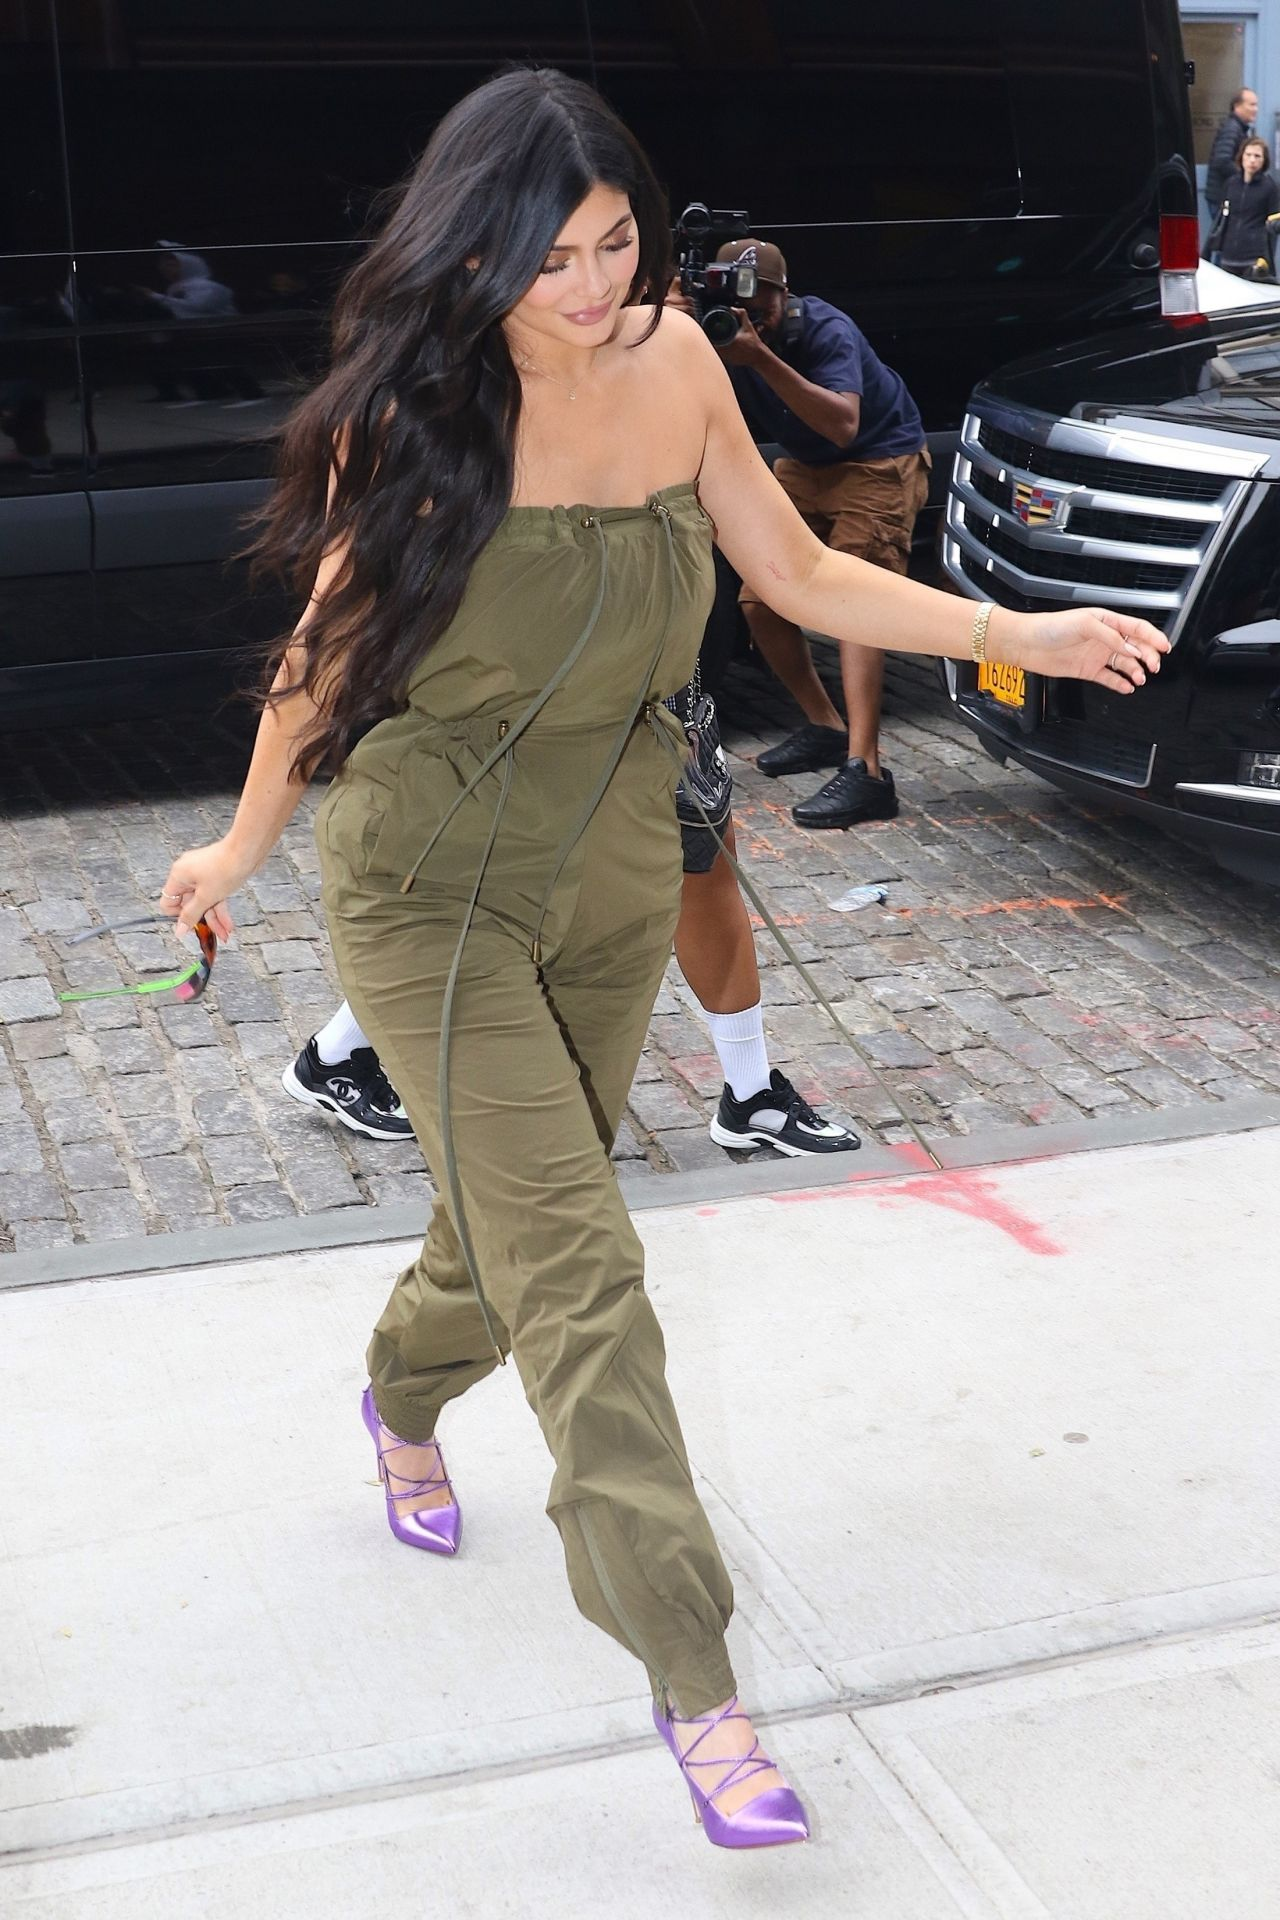 Kylie Jenner Style And Fashion New York City 05 06 2018